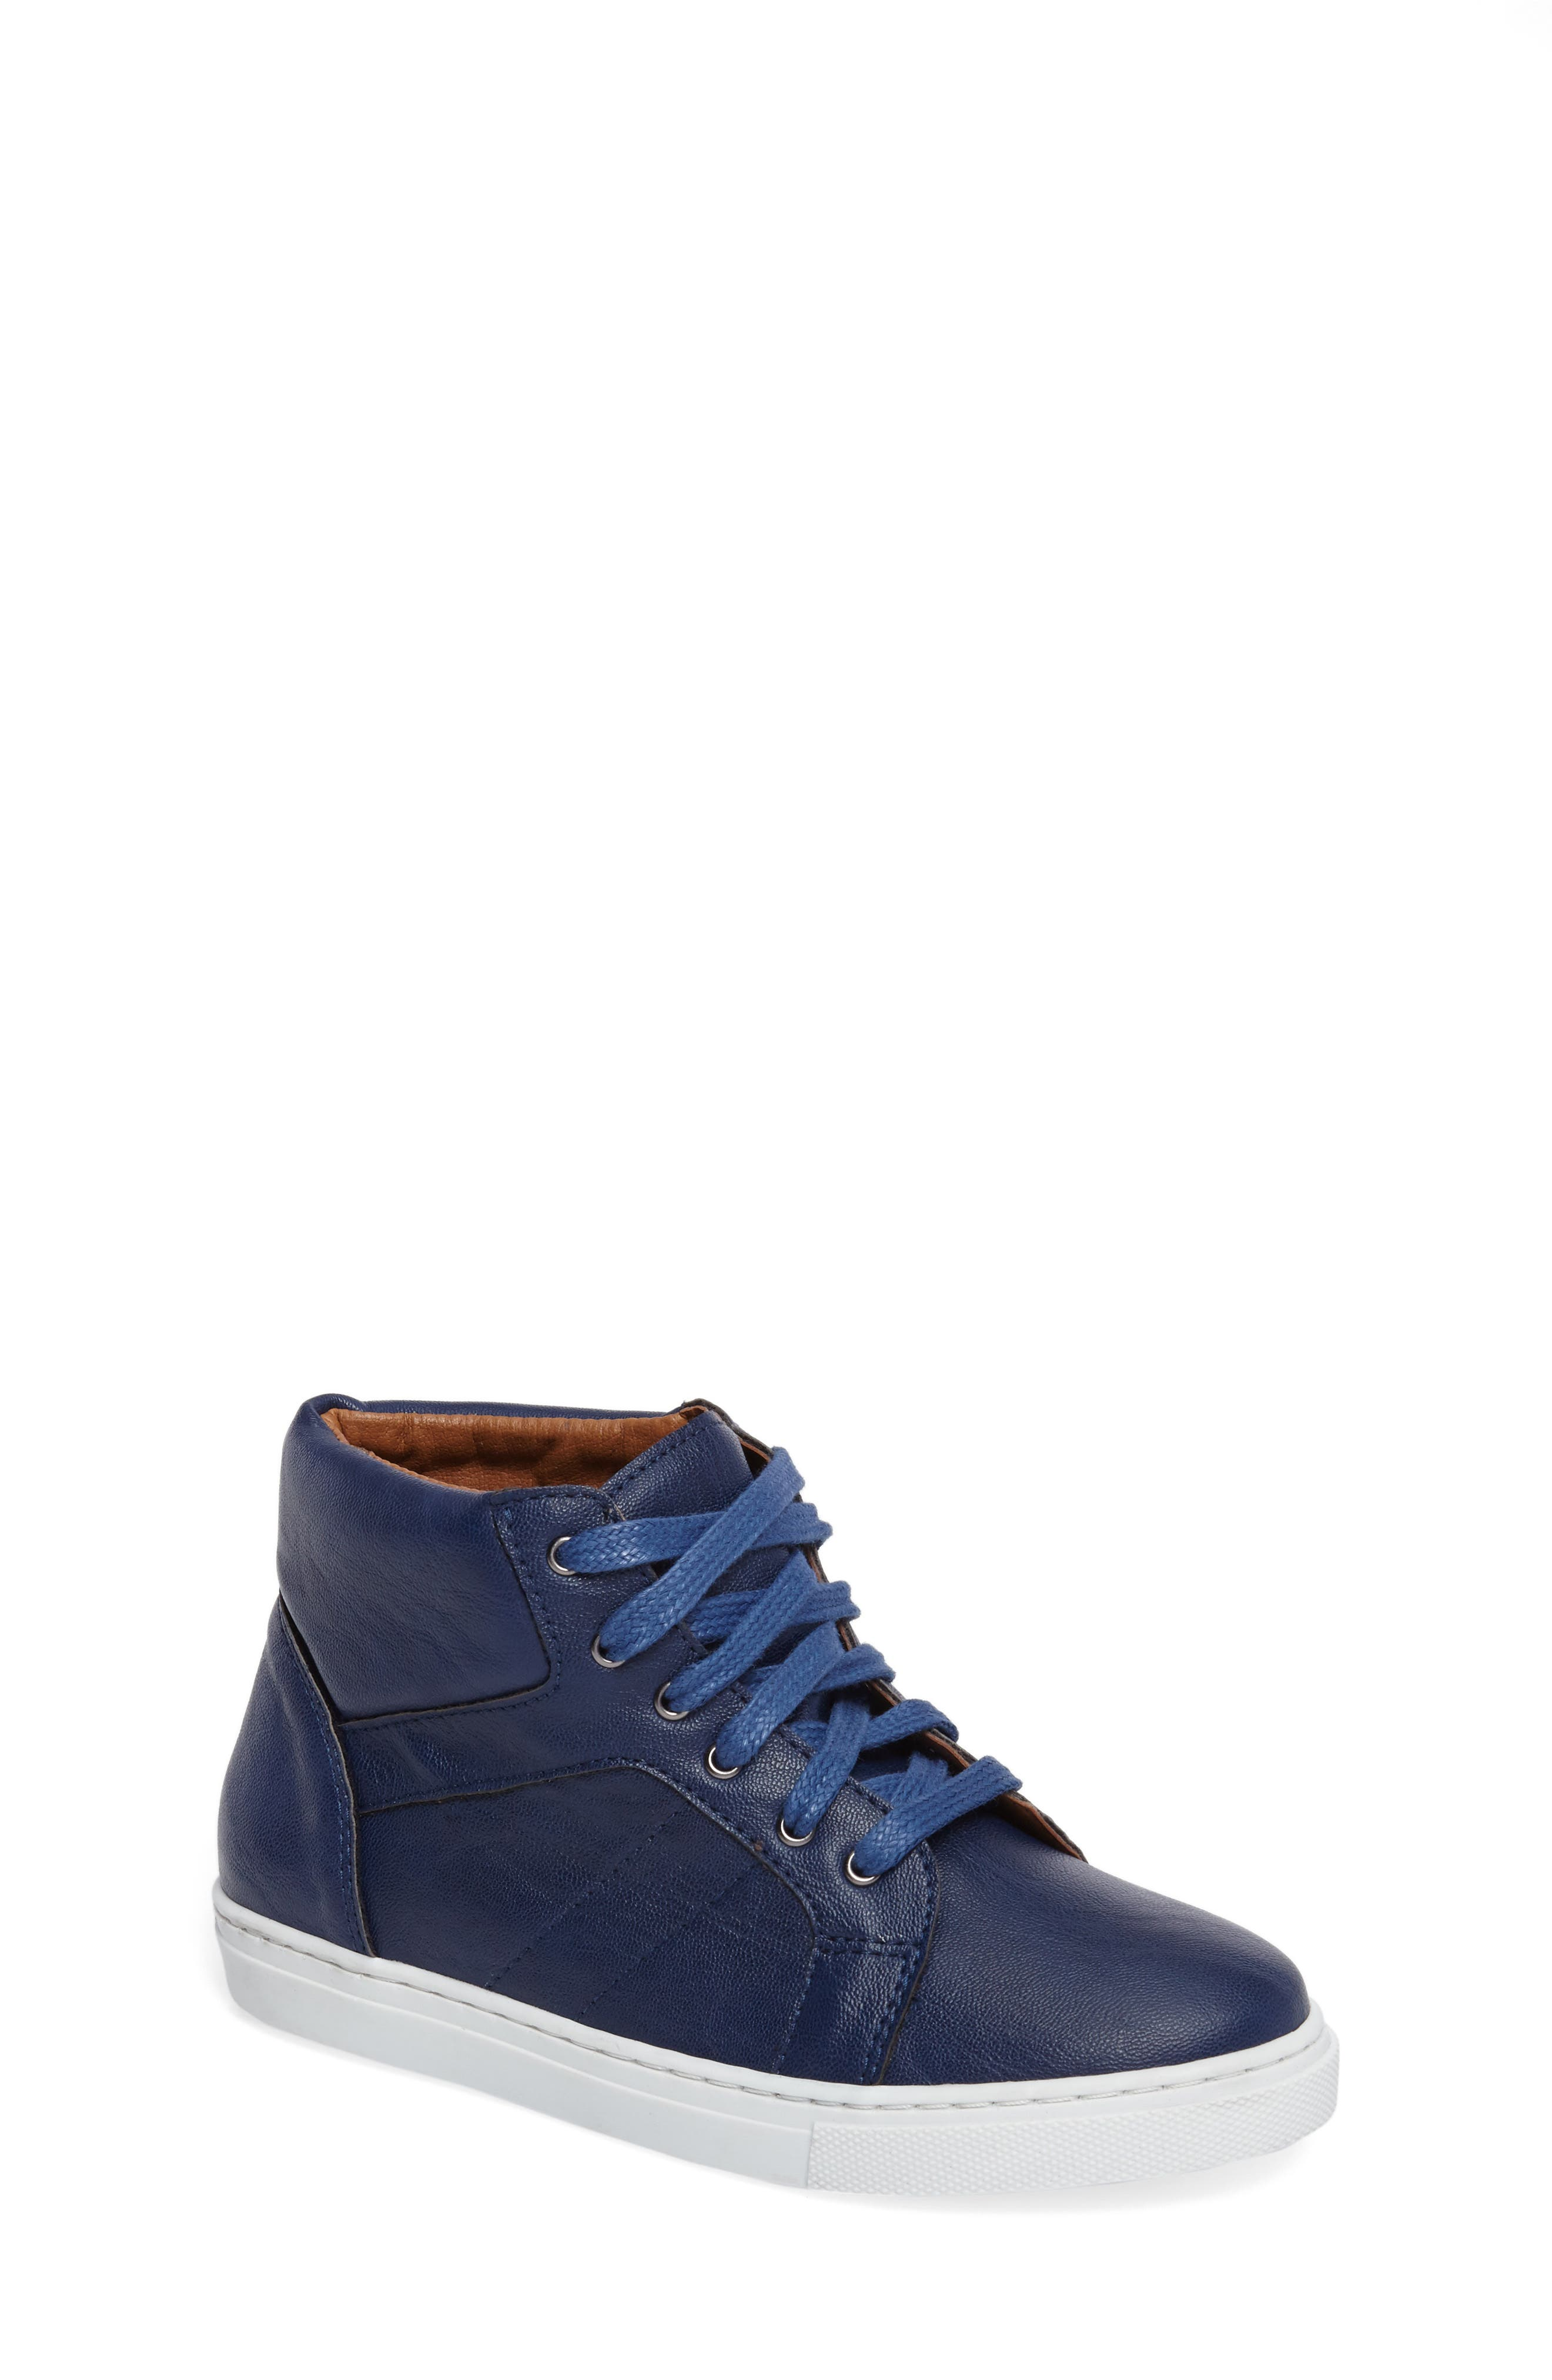 Vince Camuto Gradie High Top Sneaker (Toddler, Little Kid & Big Kid)